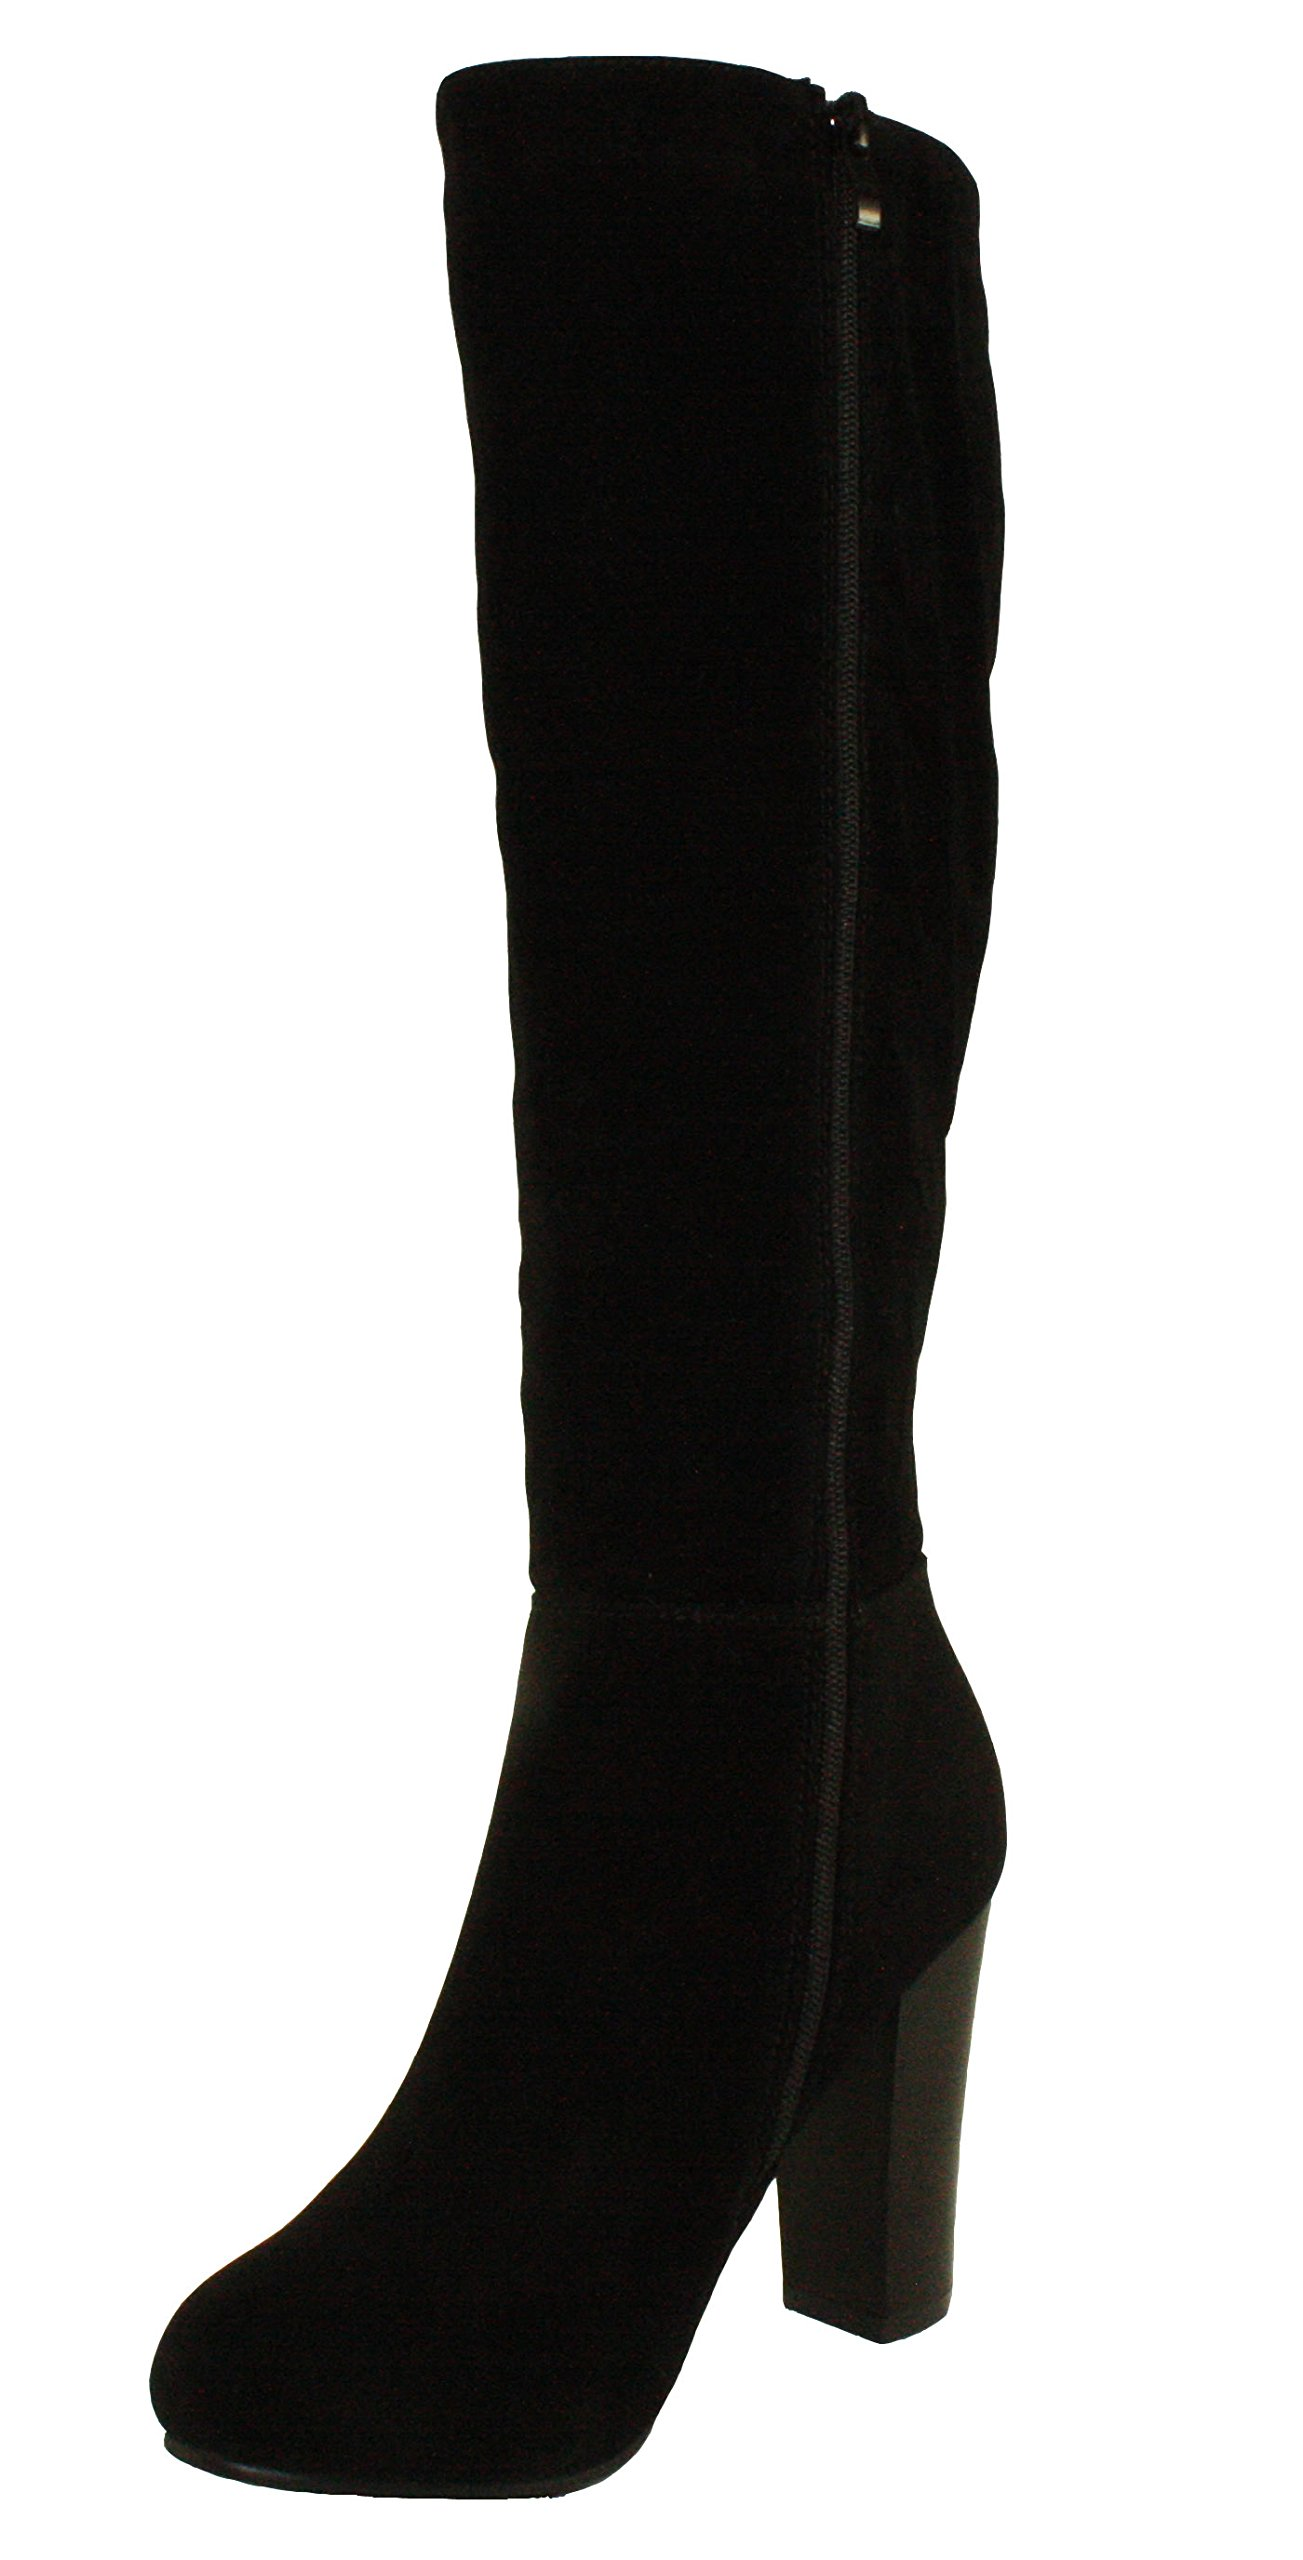 Refresh Women's Ringo-03 Knee High Side Zipper Closure Chunky High Heel Dress Boots,Black,6